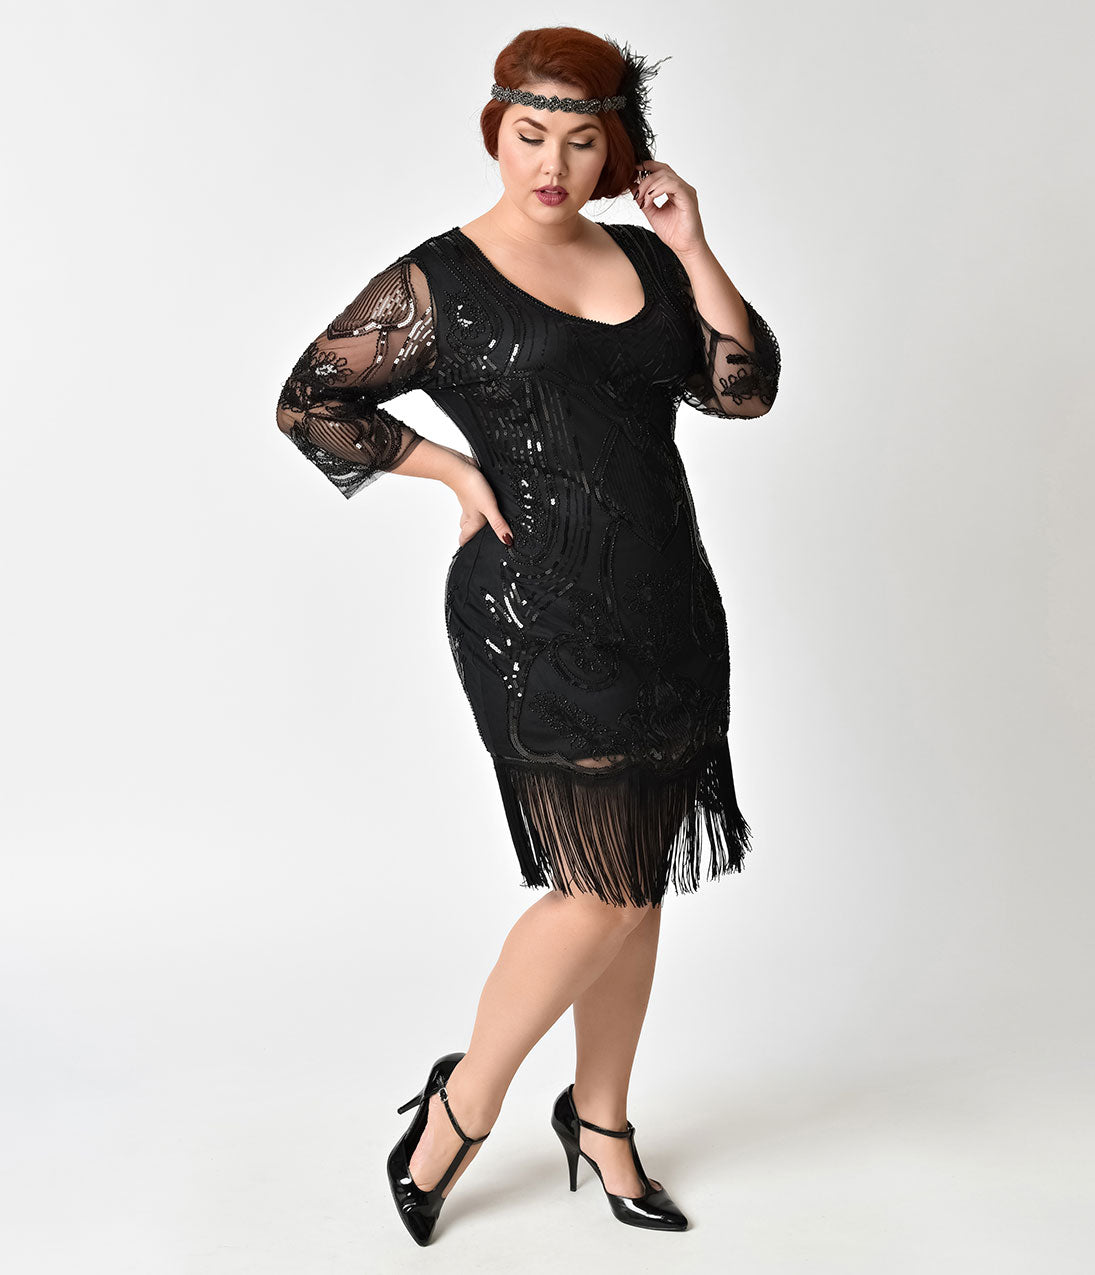 da3a29b25aa Unique Vintage Plus Size Black Beaded   Sequin Margaux Sleeved Fringe  Flapper Dress